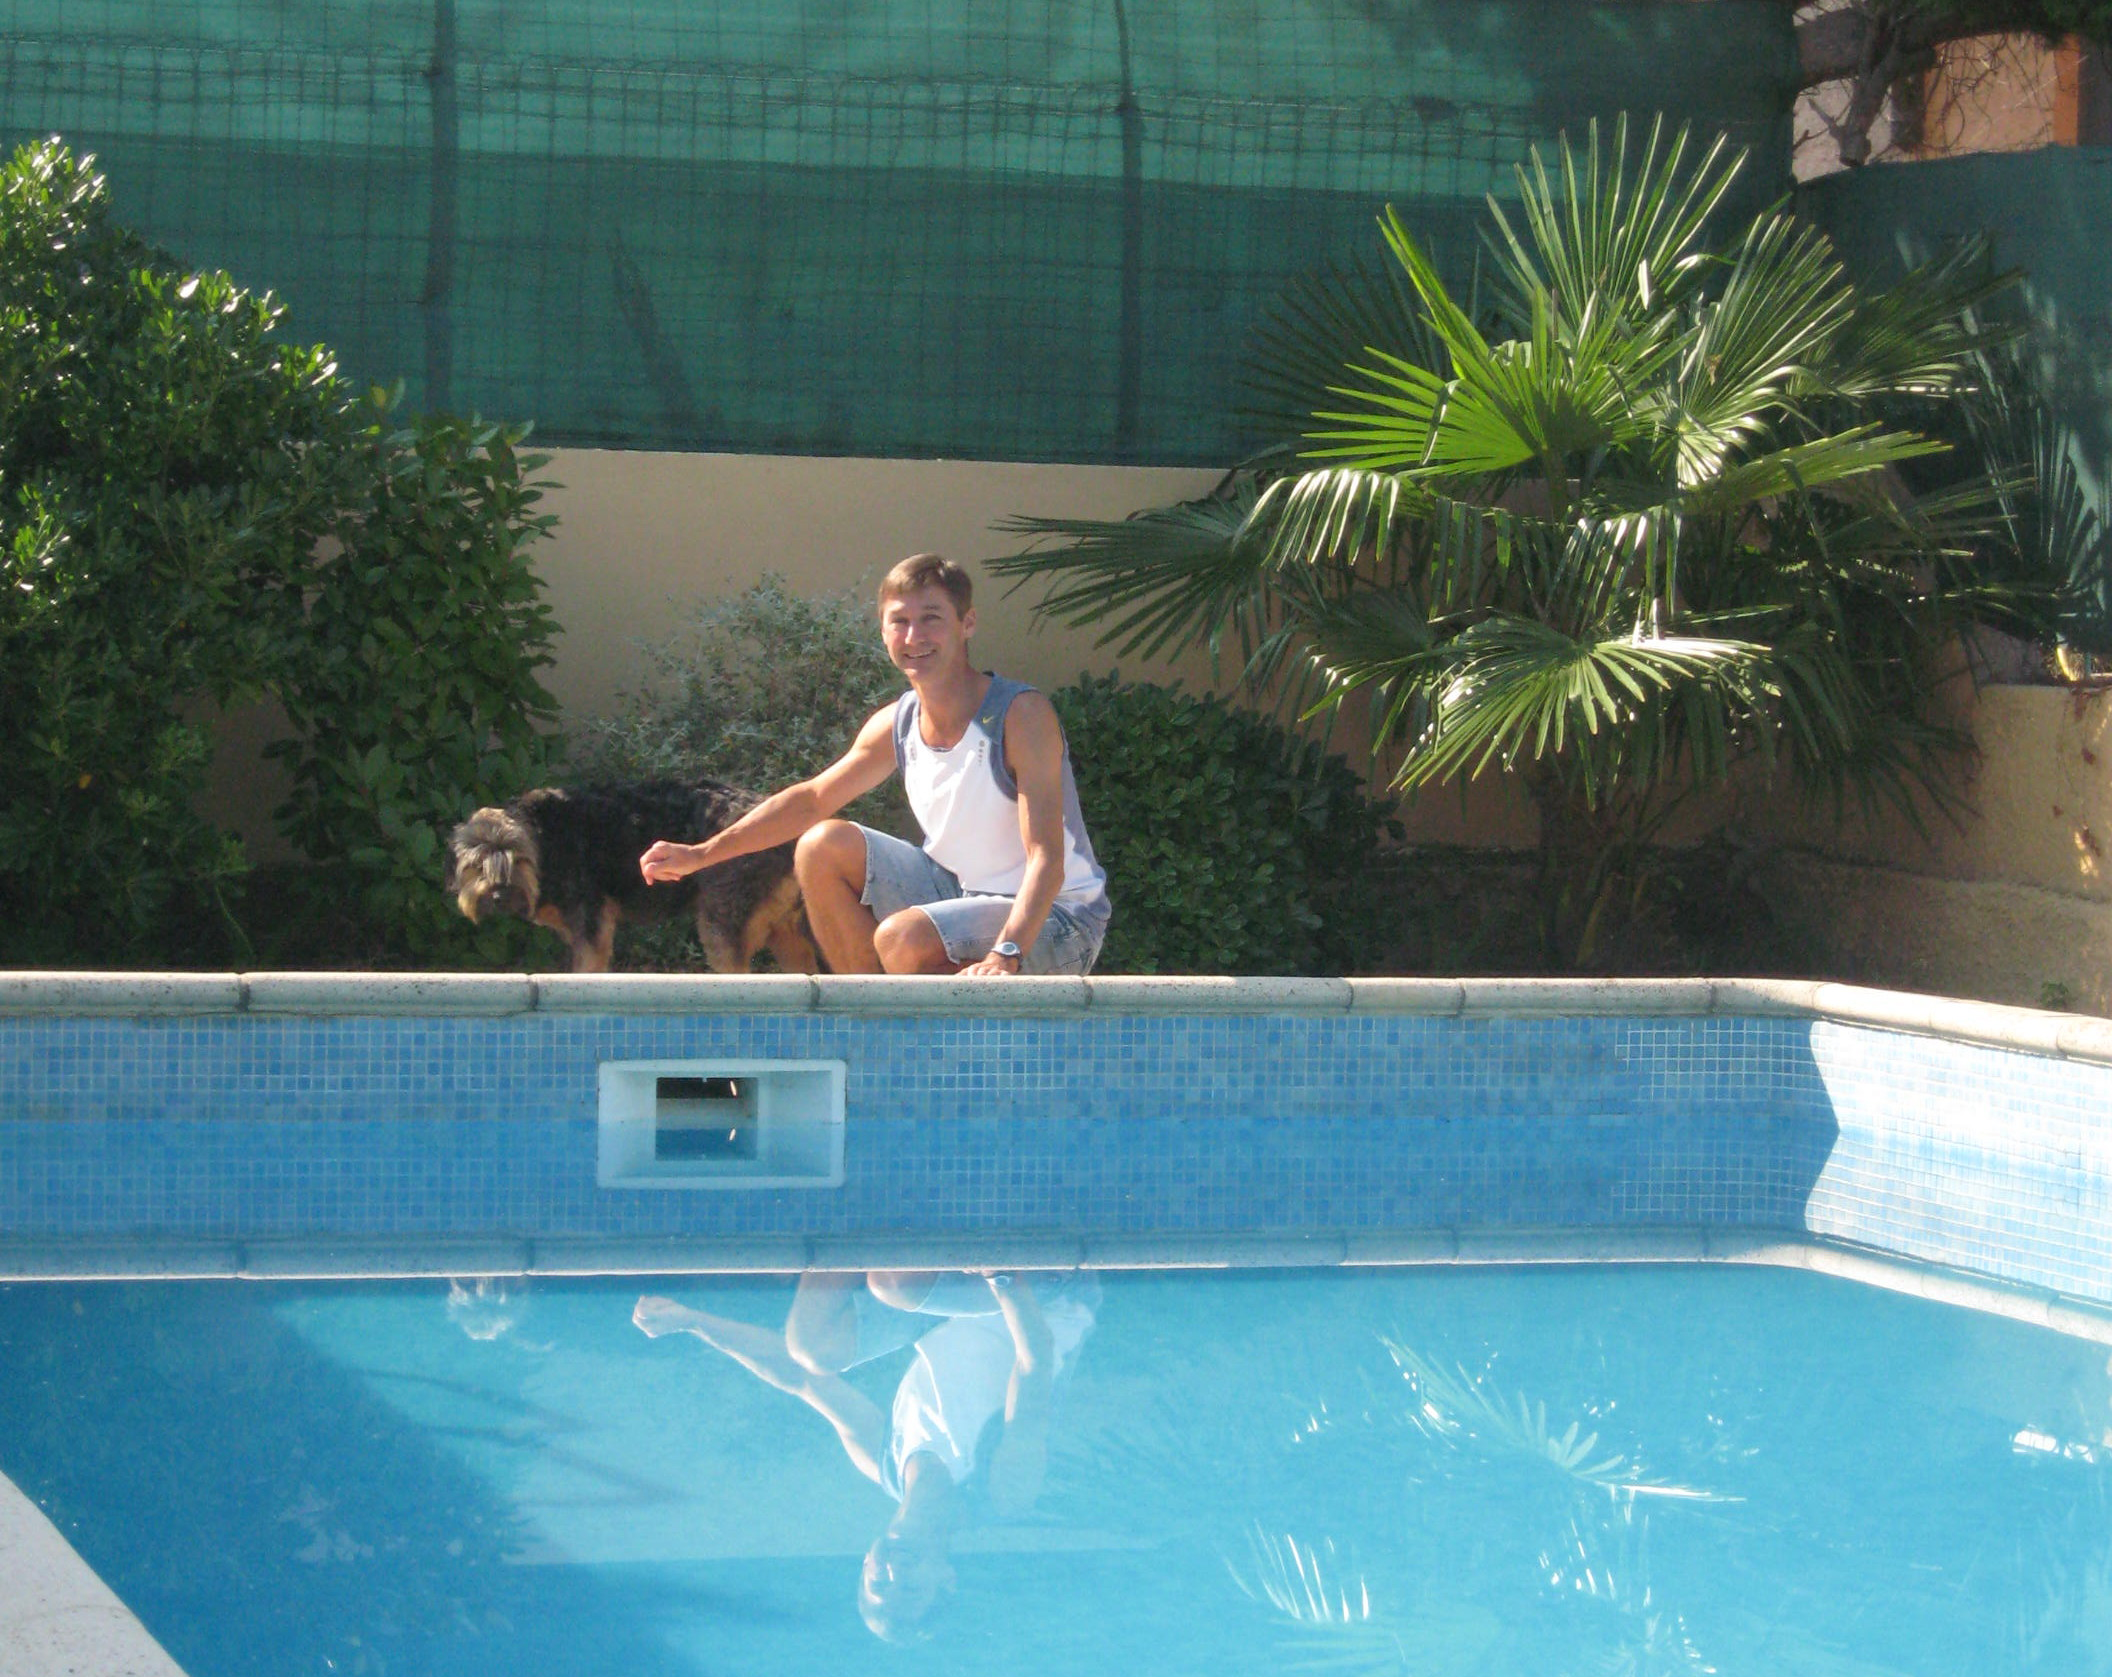 Bed and breakfast reviews and ratings rooms and suites - Pezenas piscine ...